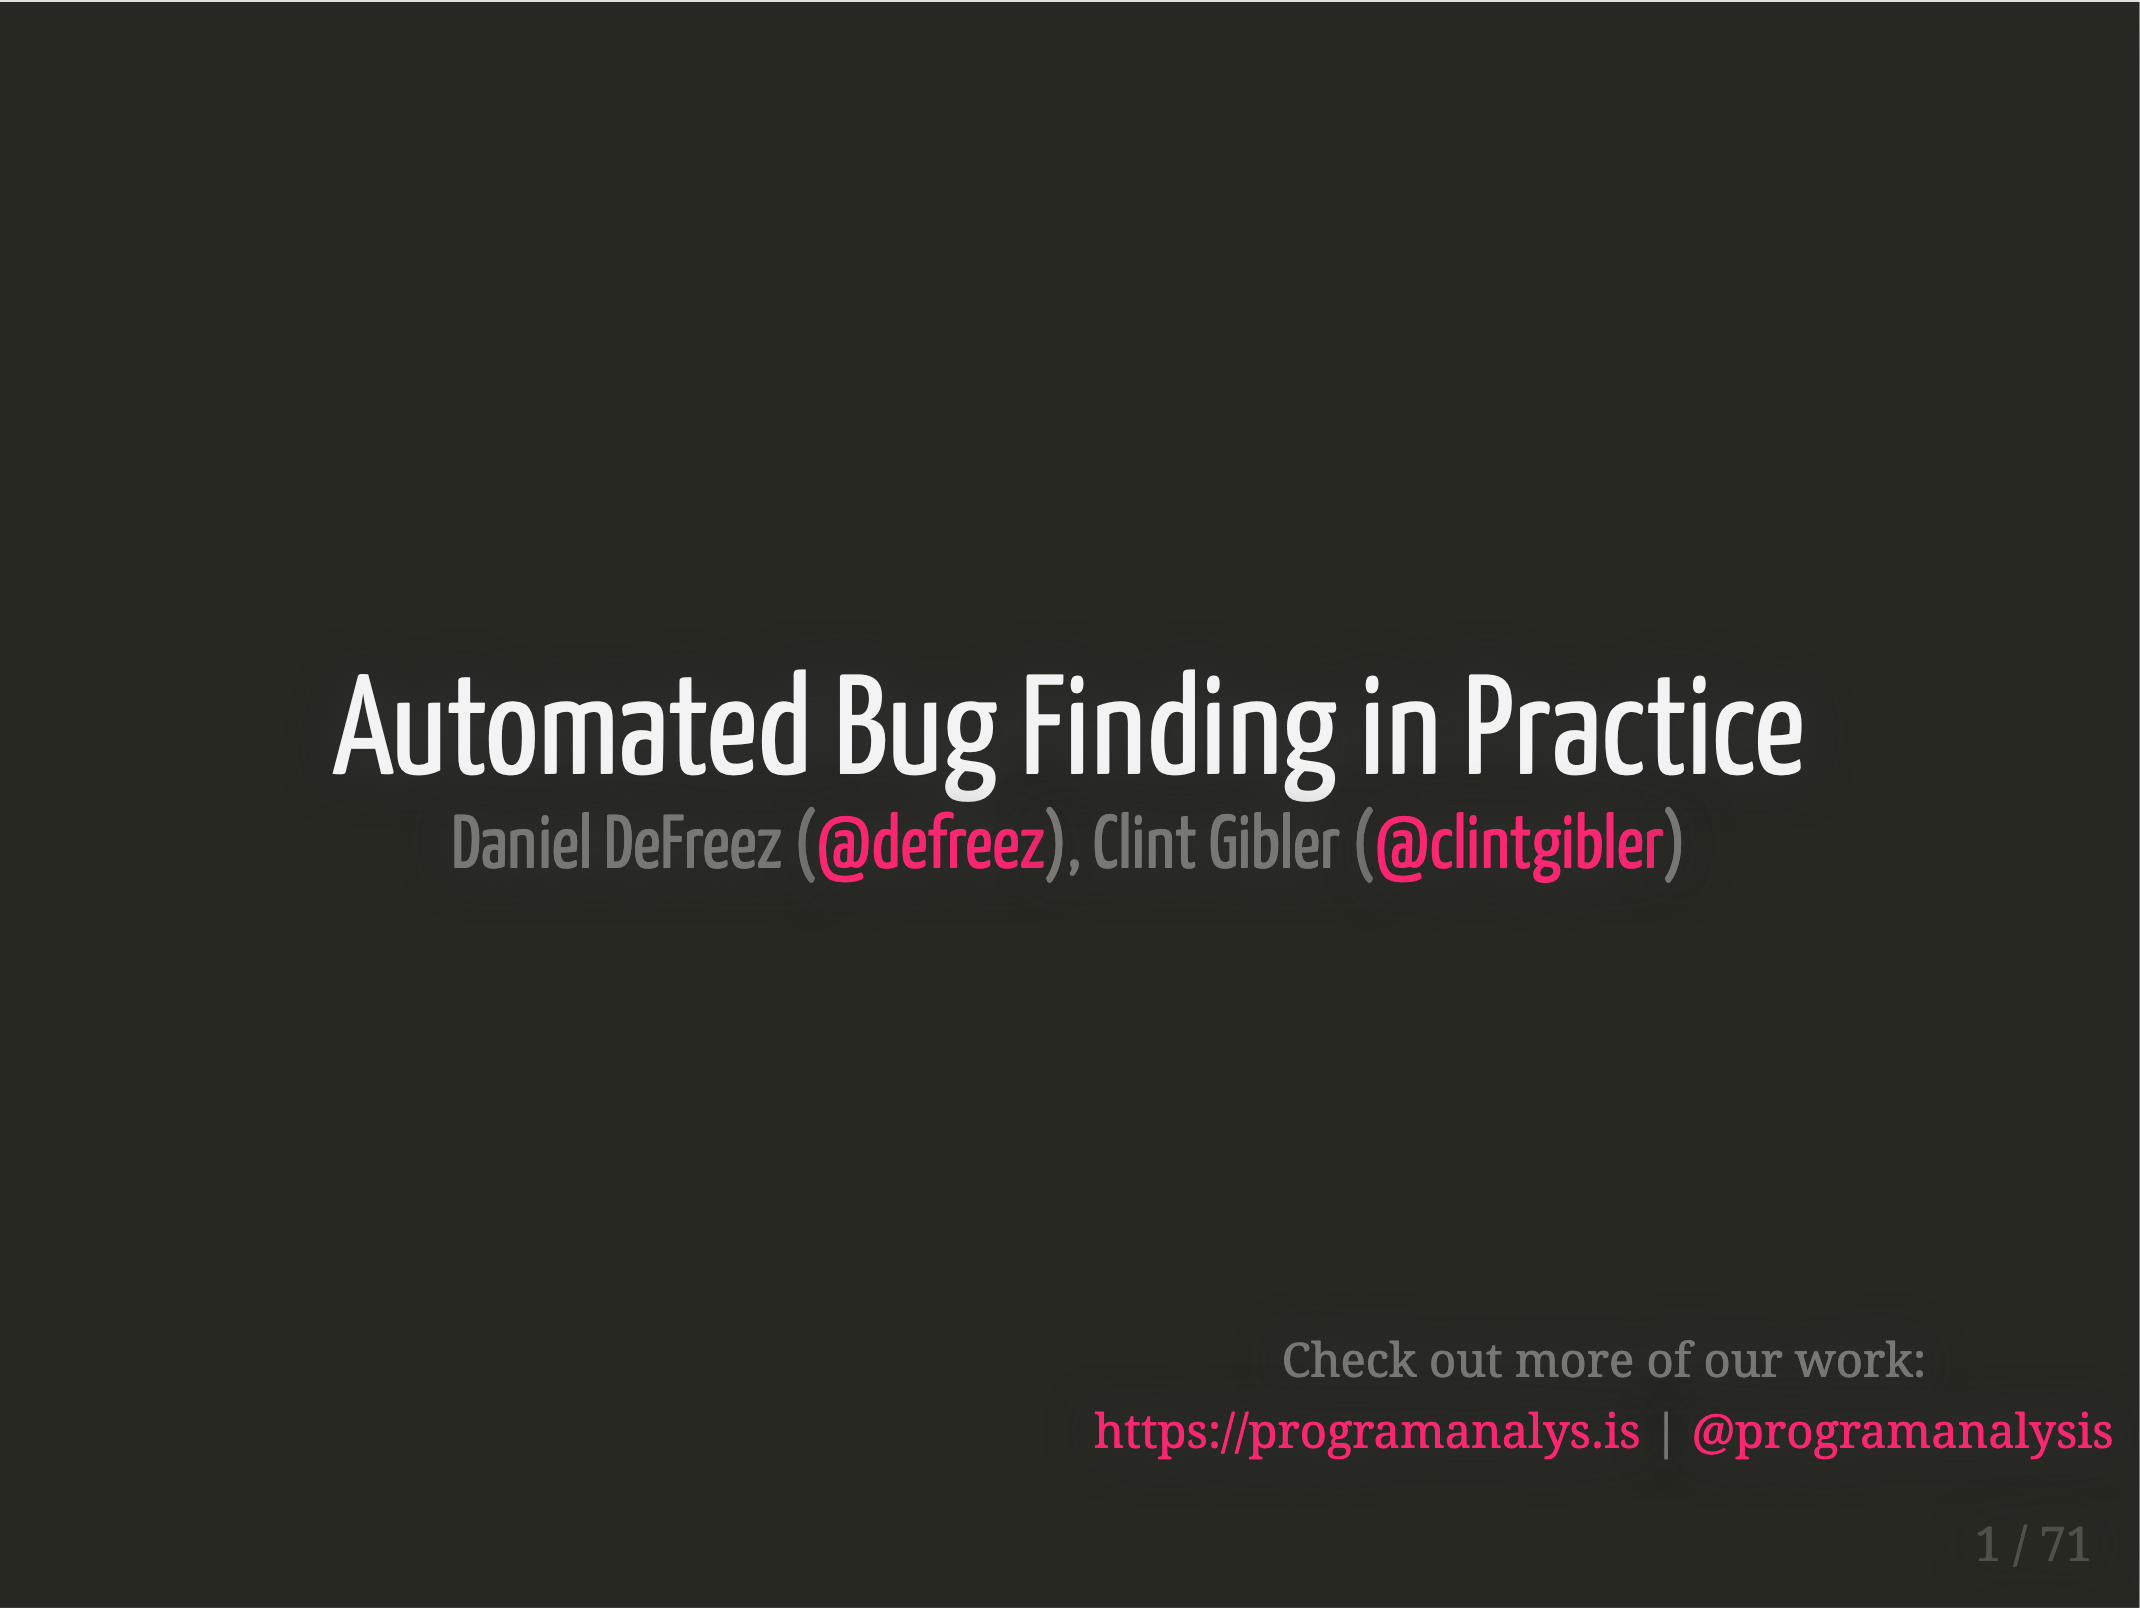 Automated Bug Finding in Practice